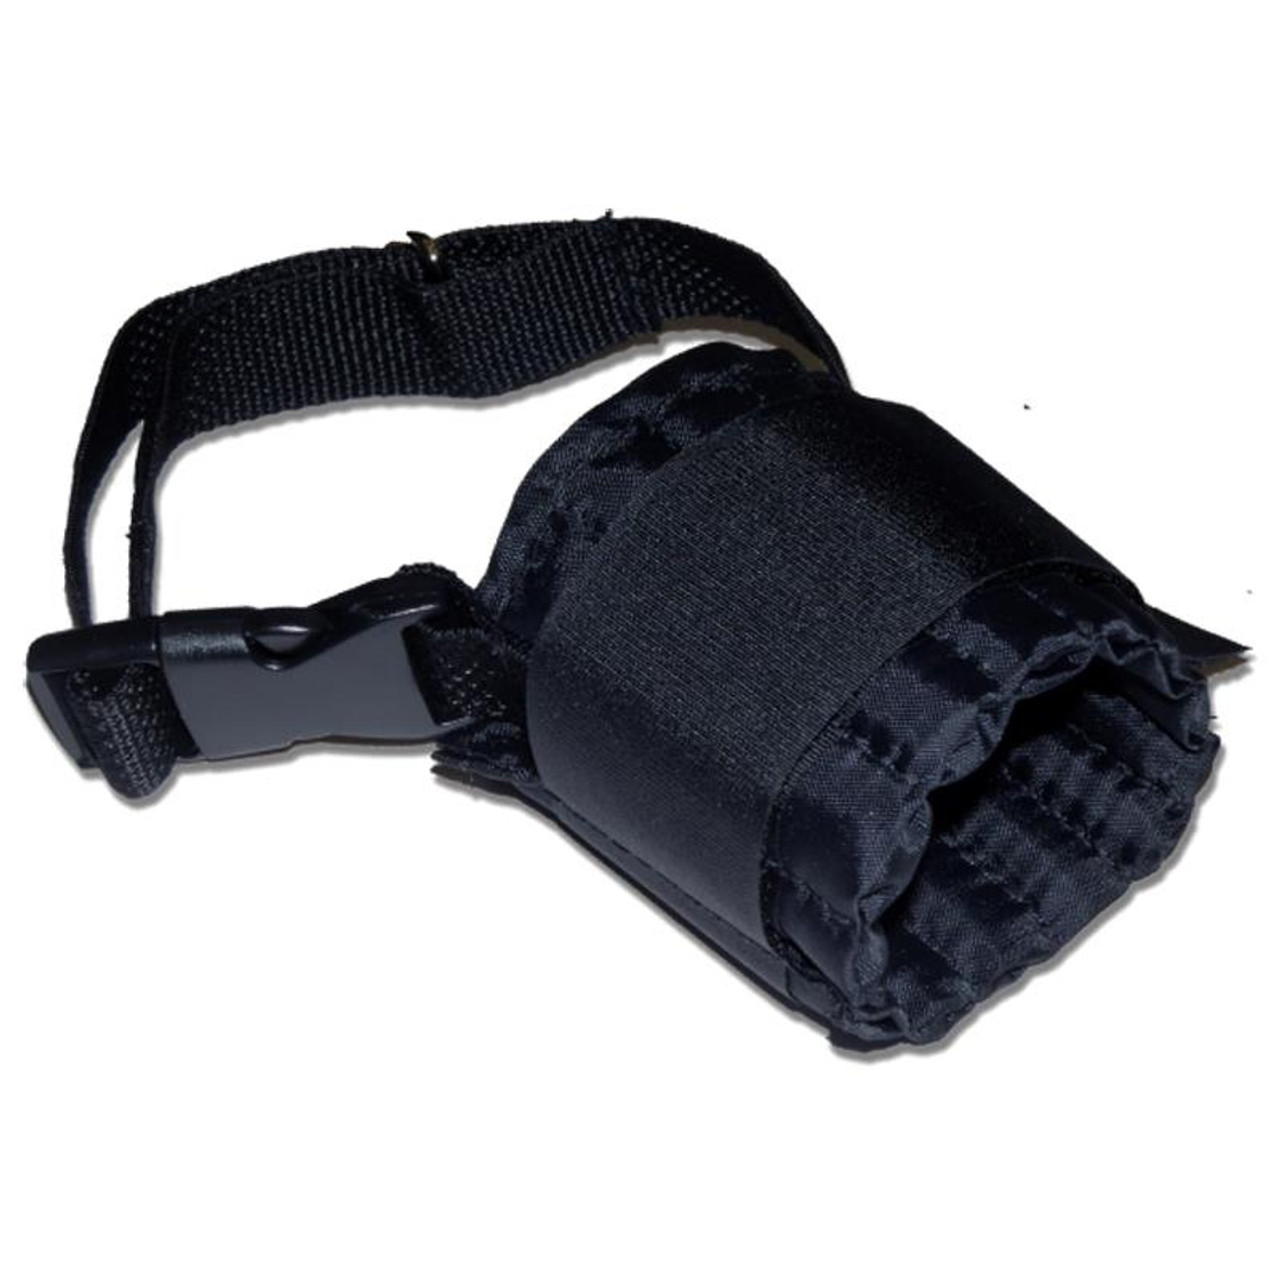 Pediatric Ankle Hitch w/Velcro for Traction Splint